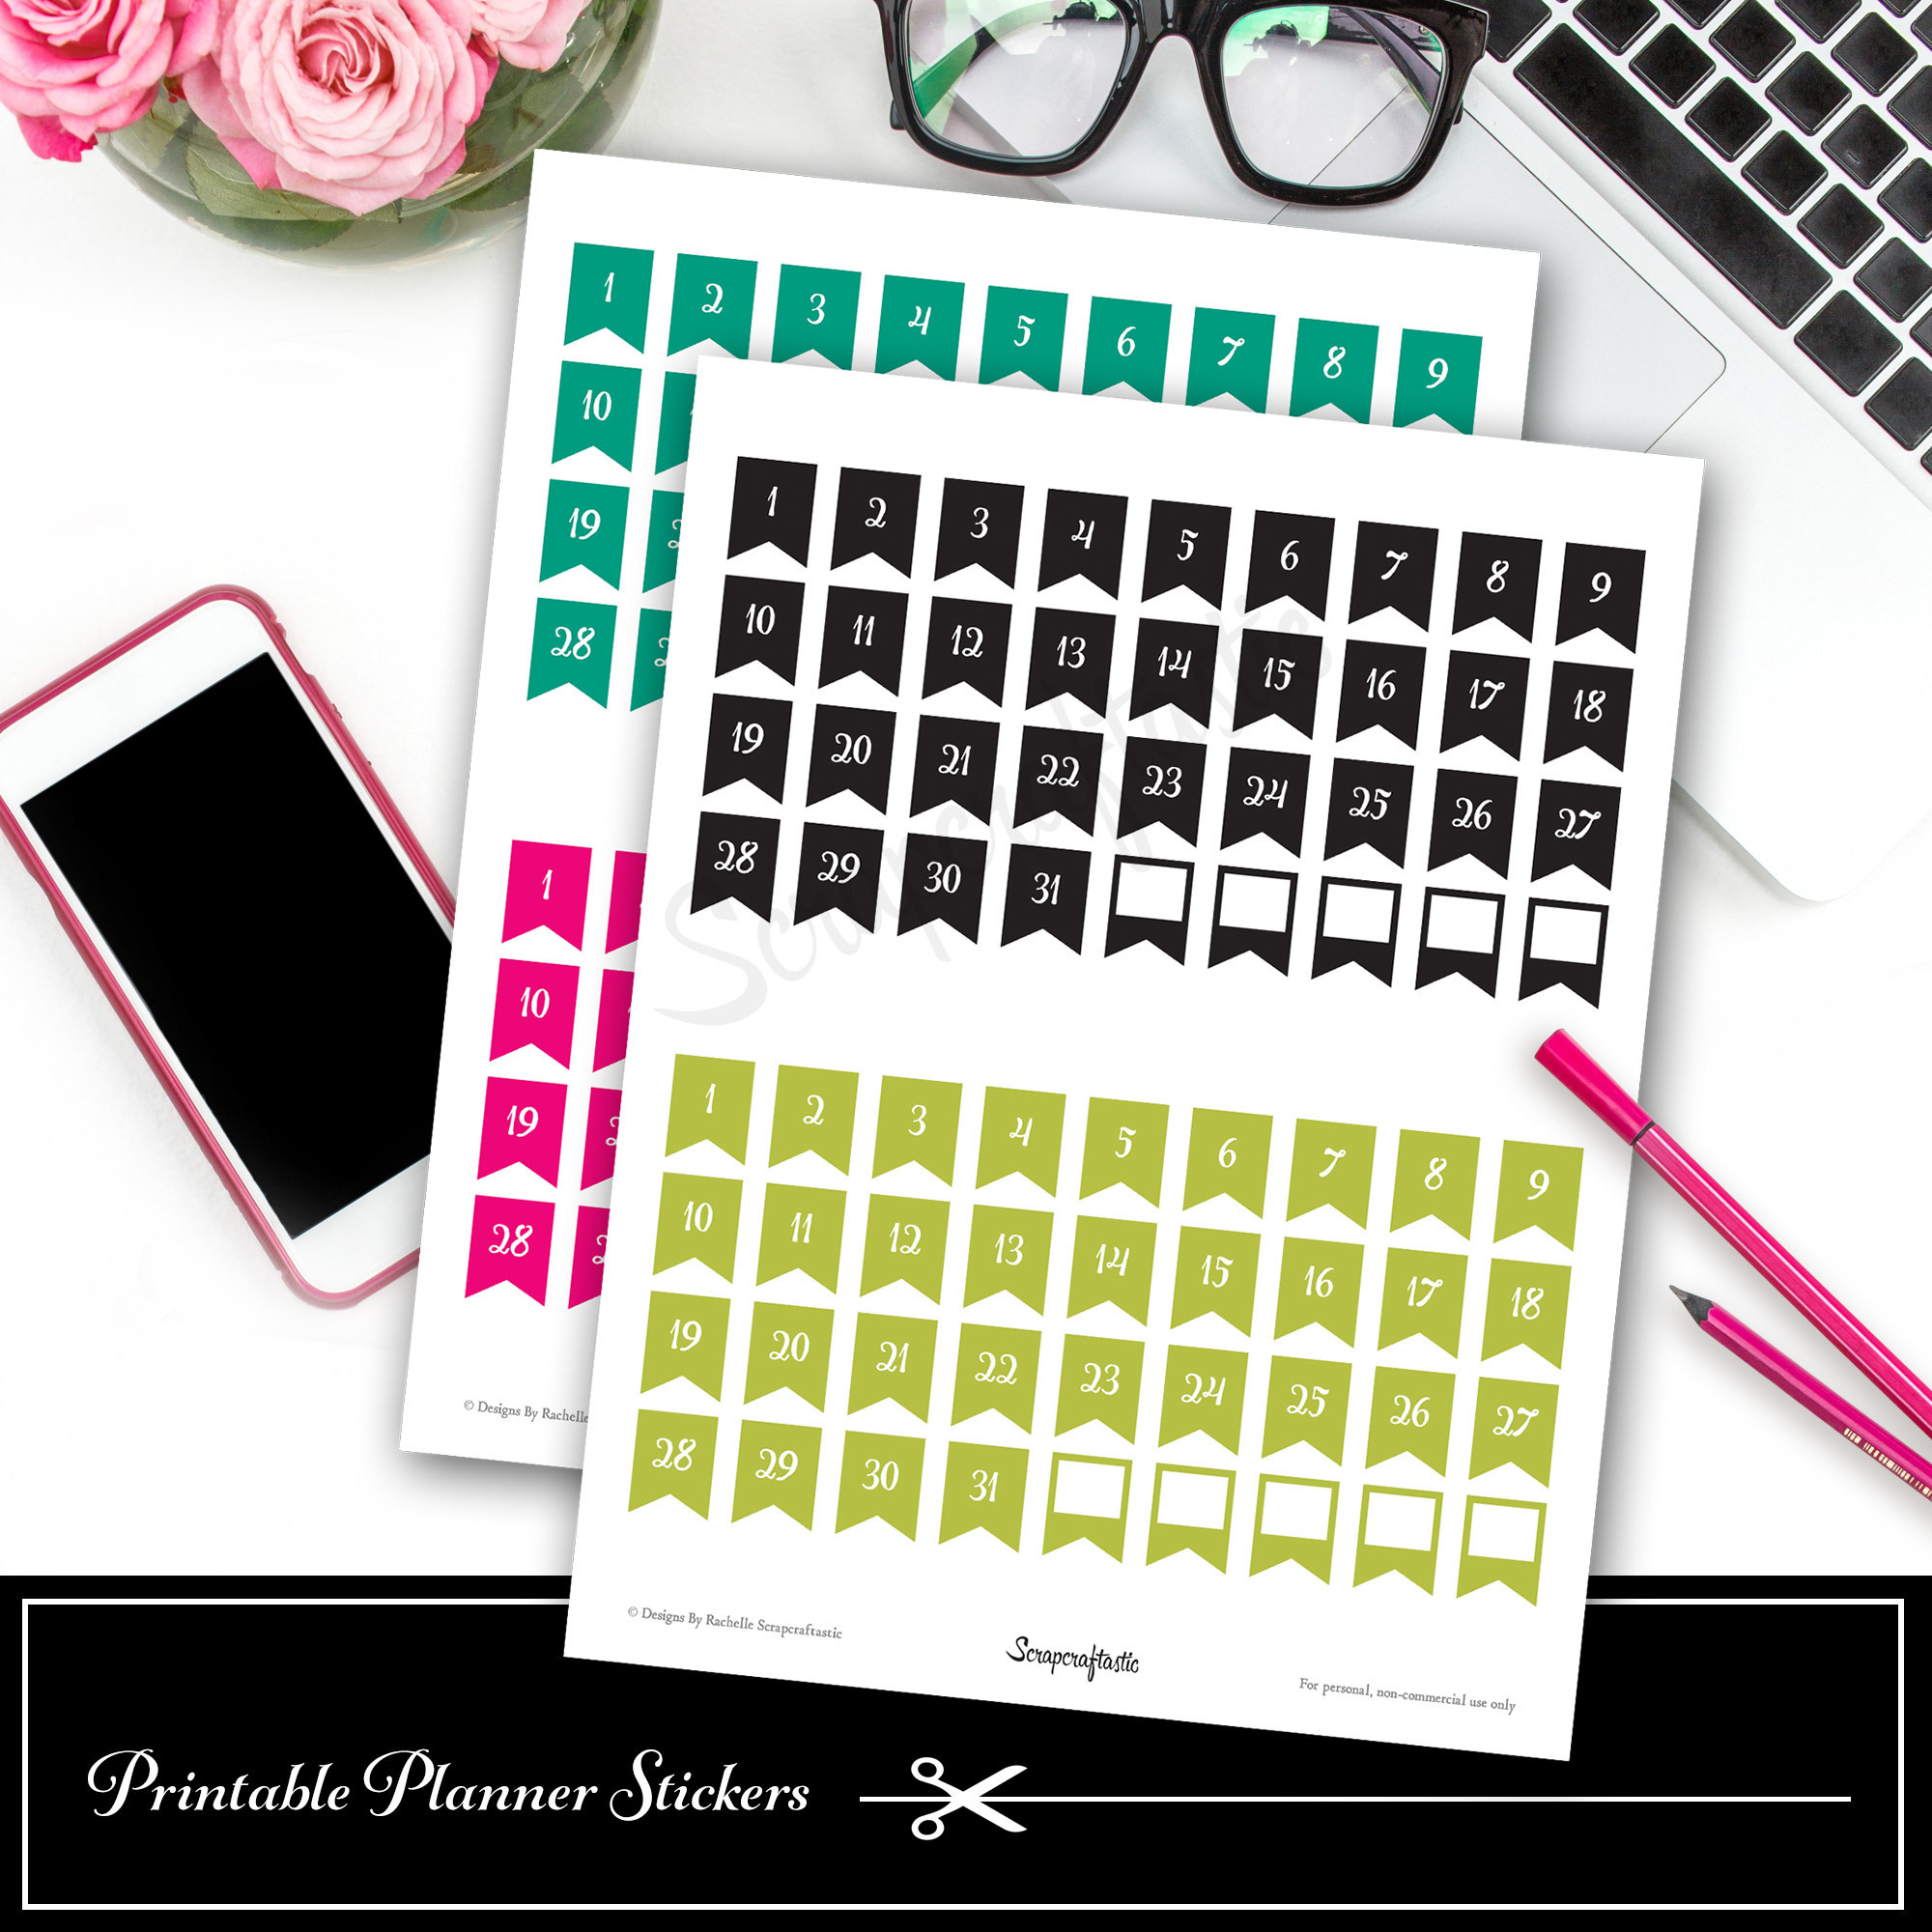 Planner Pro DIY Calendar, List and Monthly Challenge Numbered Printable Planner Stickers  Flags Only 03006